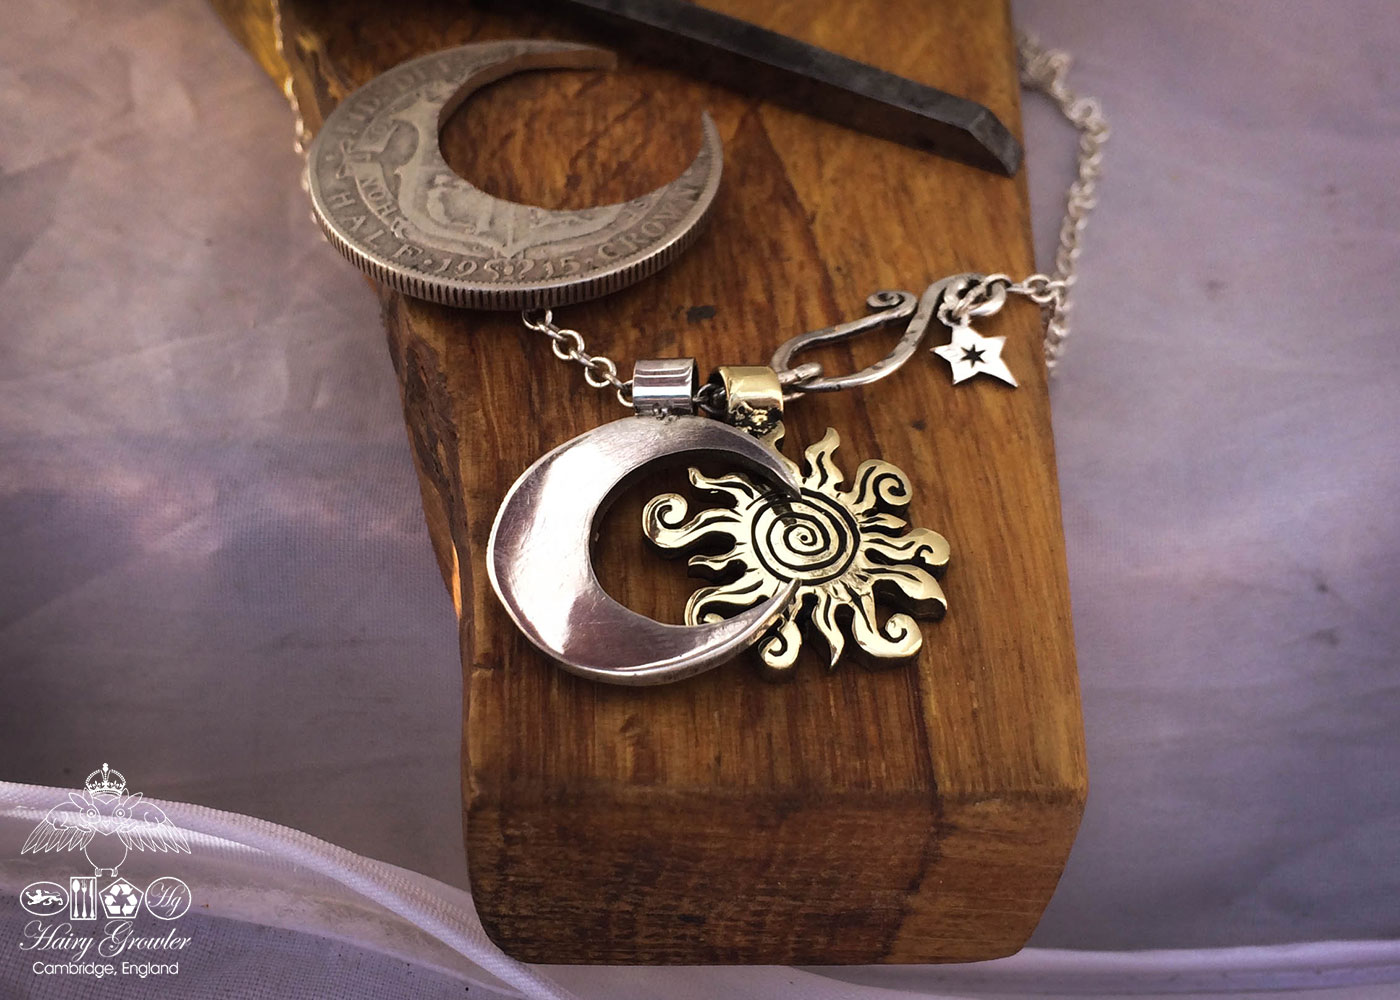 handmade bronze sun charm for a tree sculpture, necklace or bracelet